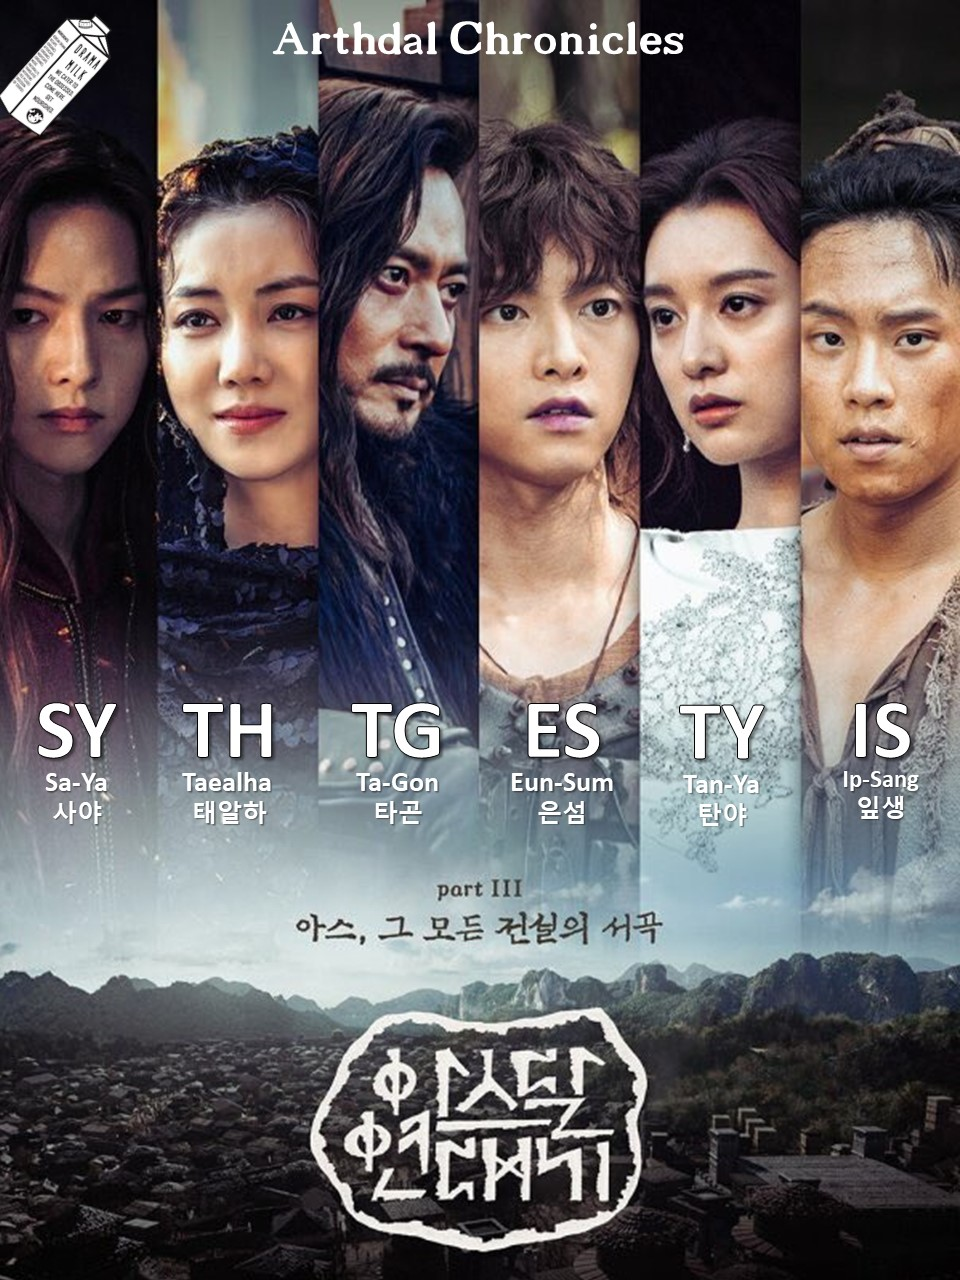 Character chart for Kdrama Arthdal Chronicles season 3